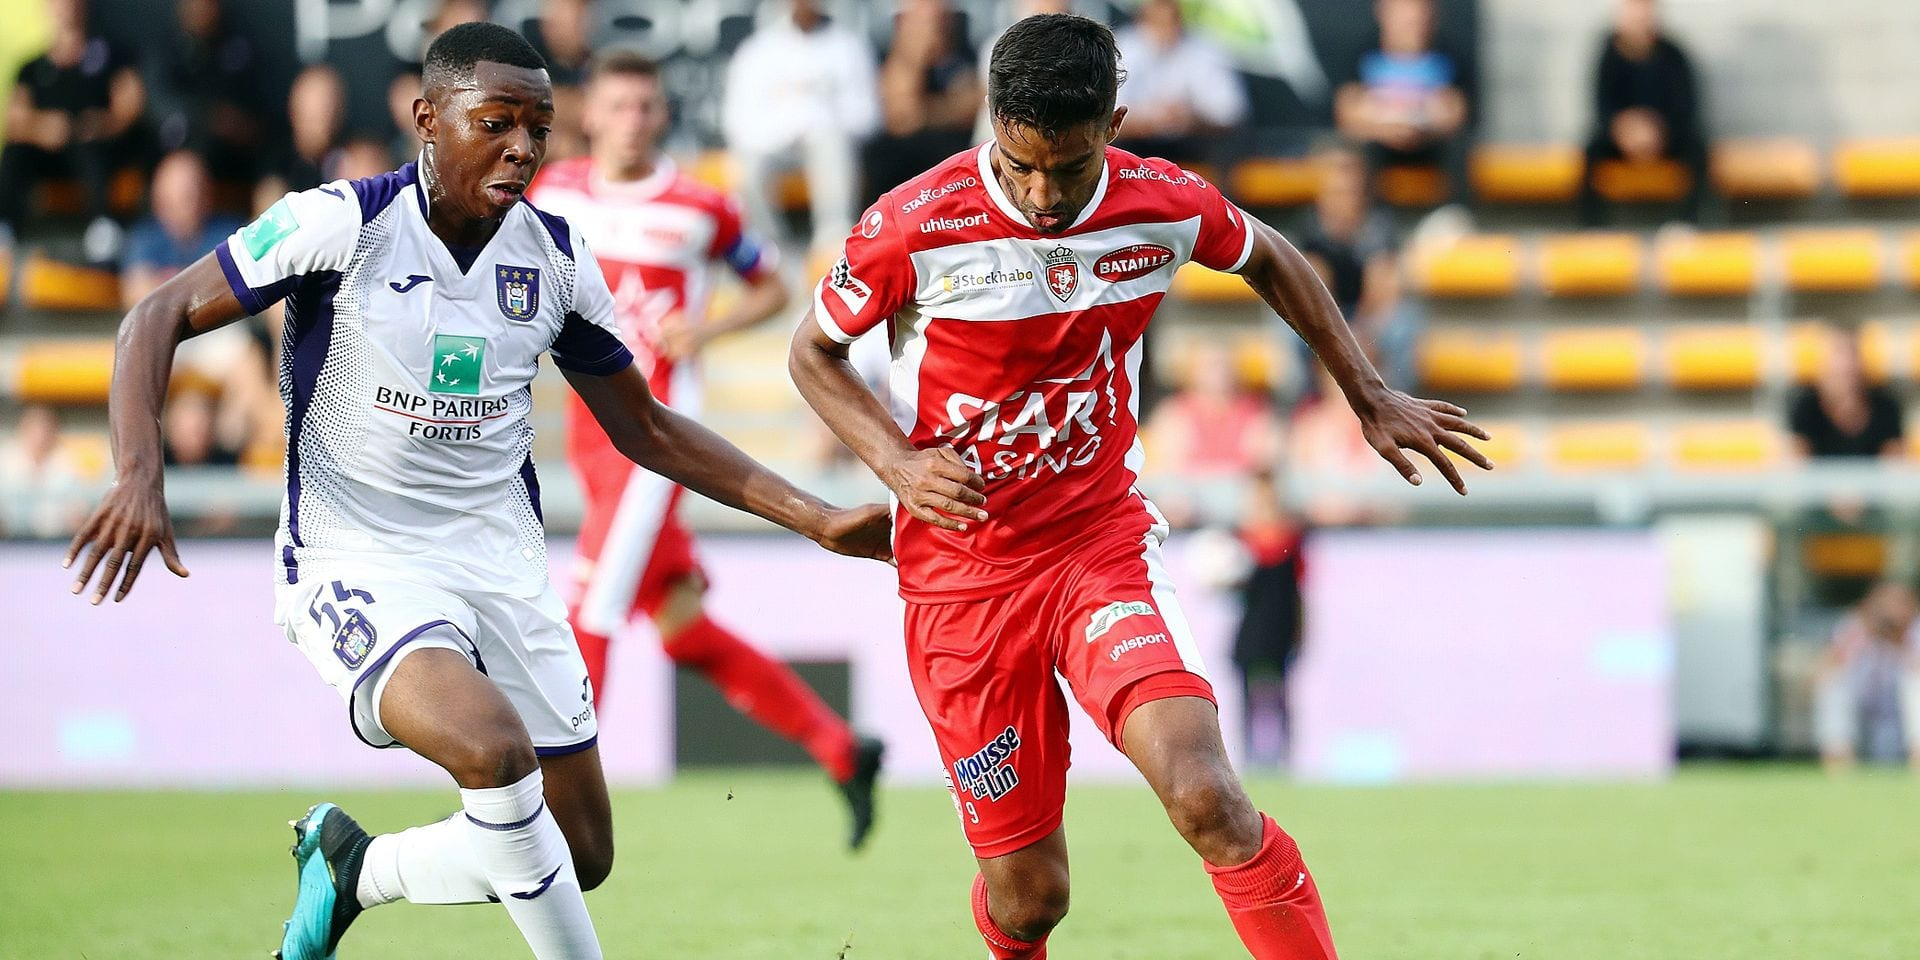 Anderlecht's Marco Kana and Mouscron's Sami Allagui fight for the ball during a soccer match between Royal Excel Mouscron and RSC Anderlecht, Sunday 04 August 2019 in Mouscron, on the second day of the 'Jupiler Pro League' Belgian soccer championship season 2019-2020. BELGA PHOTO VIRGINIE LEFOUR